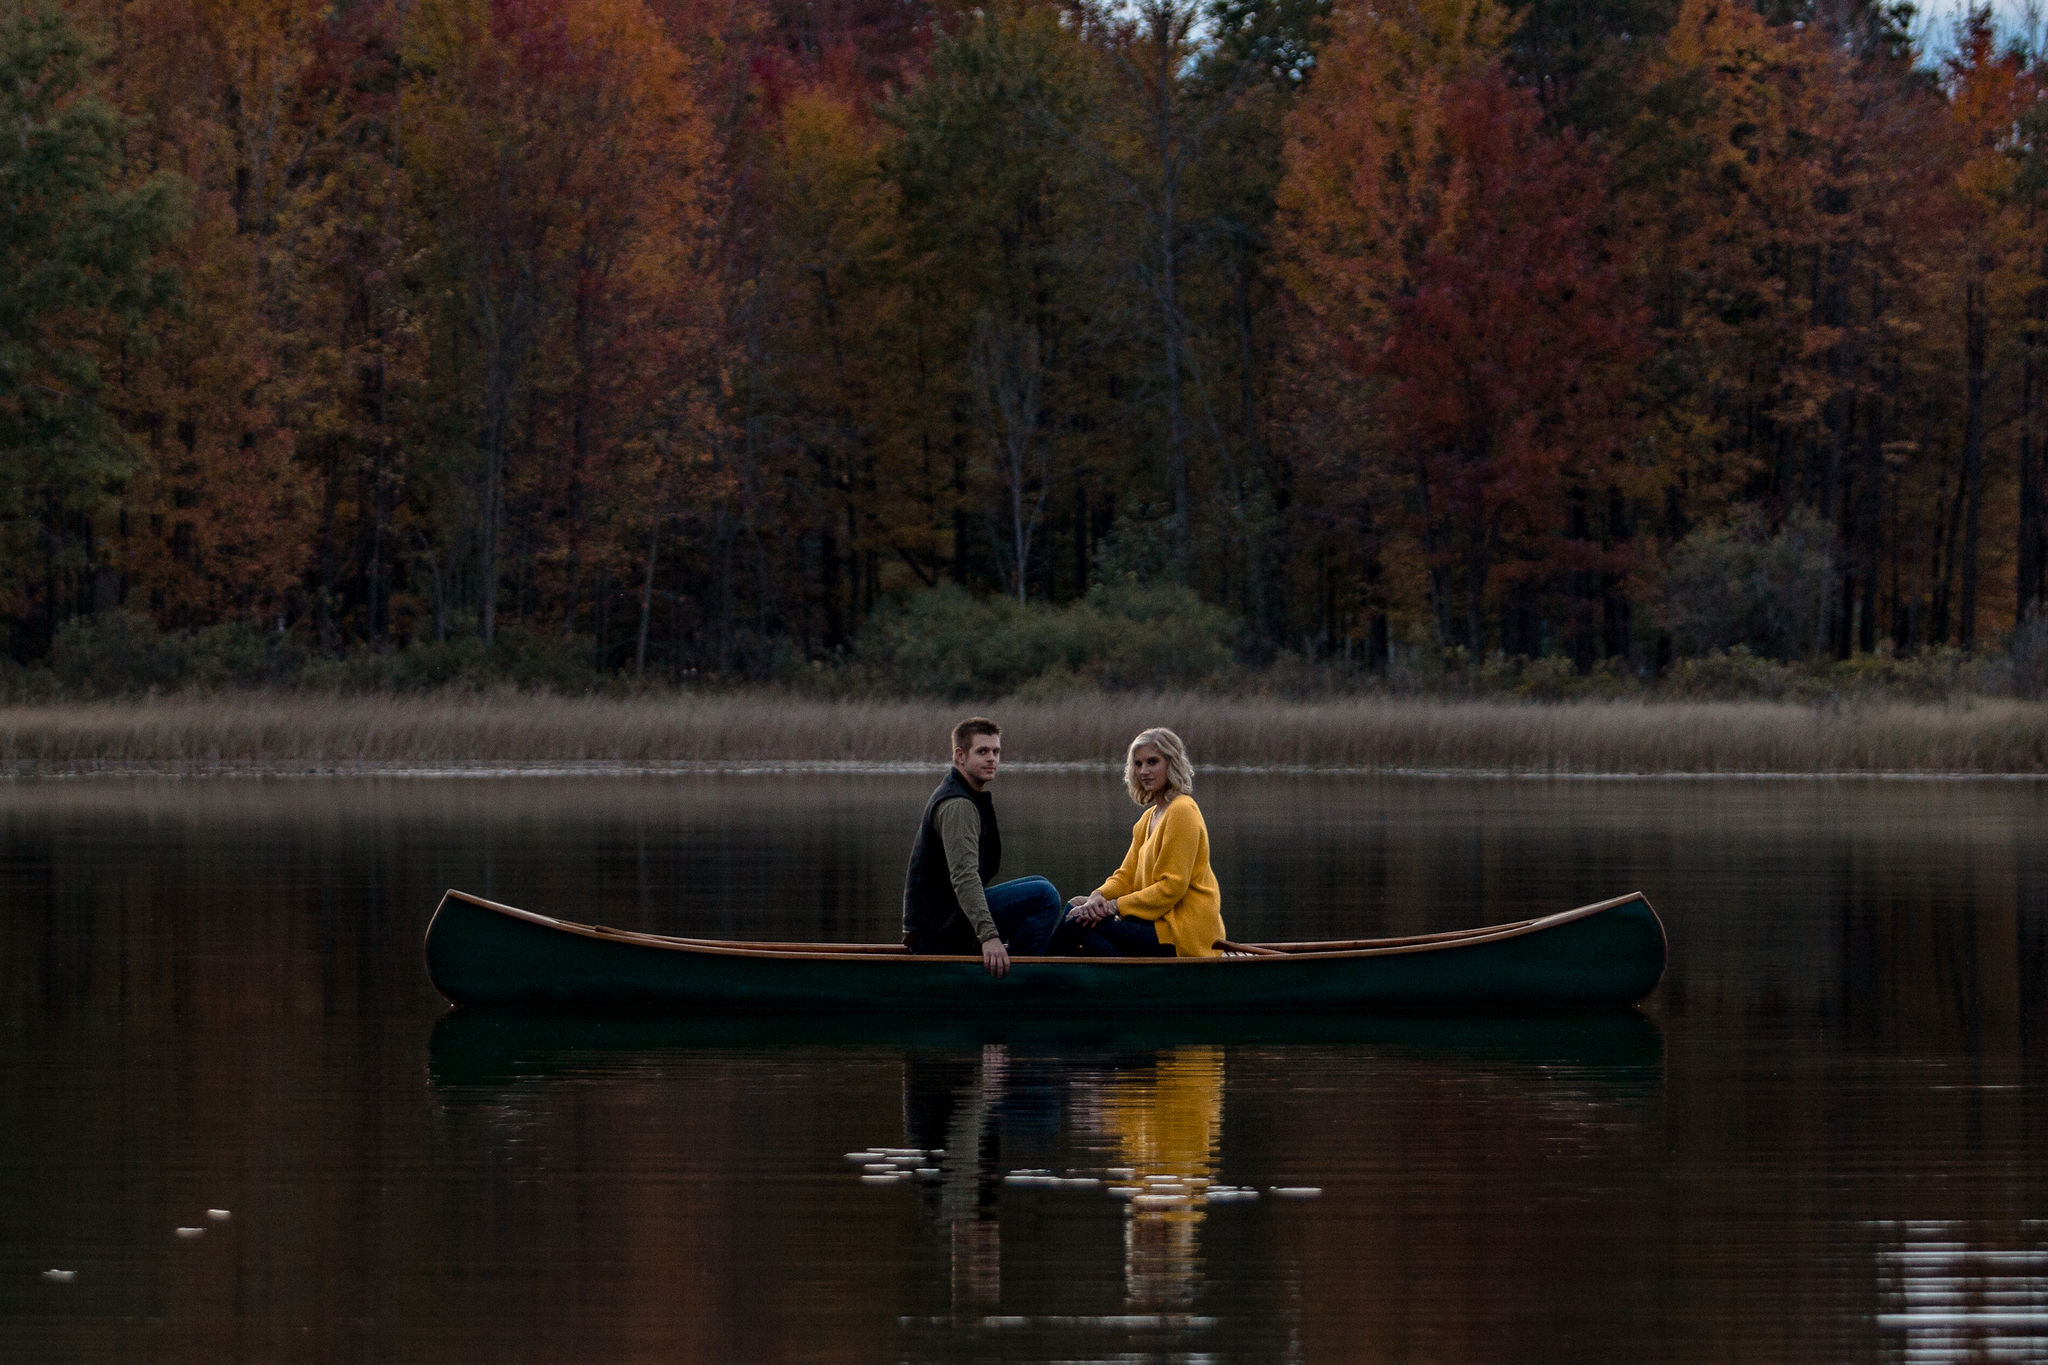 Michigan_fall_engagement_proposal_photographer_adventure_couple_-54.jpg